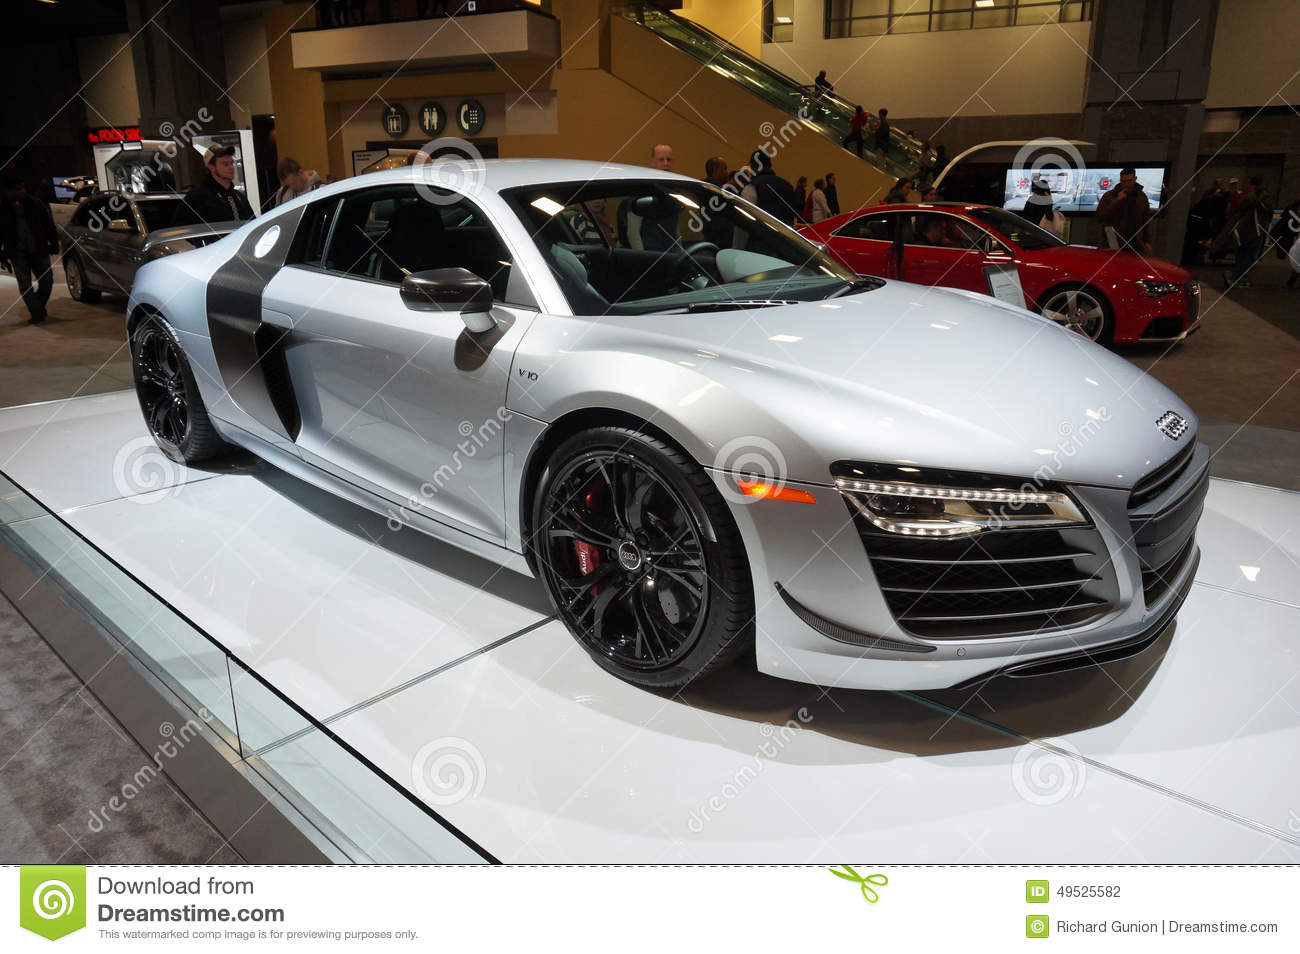 2015 Audi R8 Coupe Editorial Photography Image Of Show 49525582